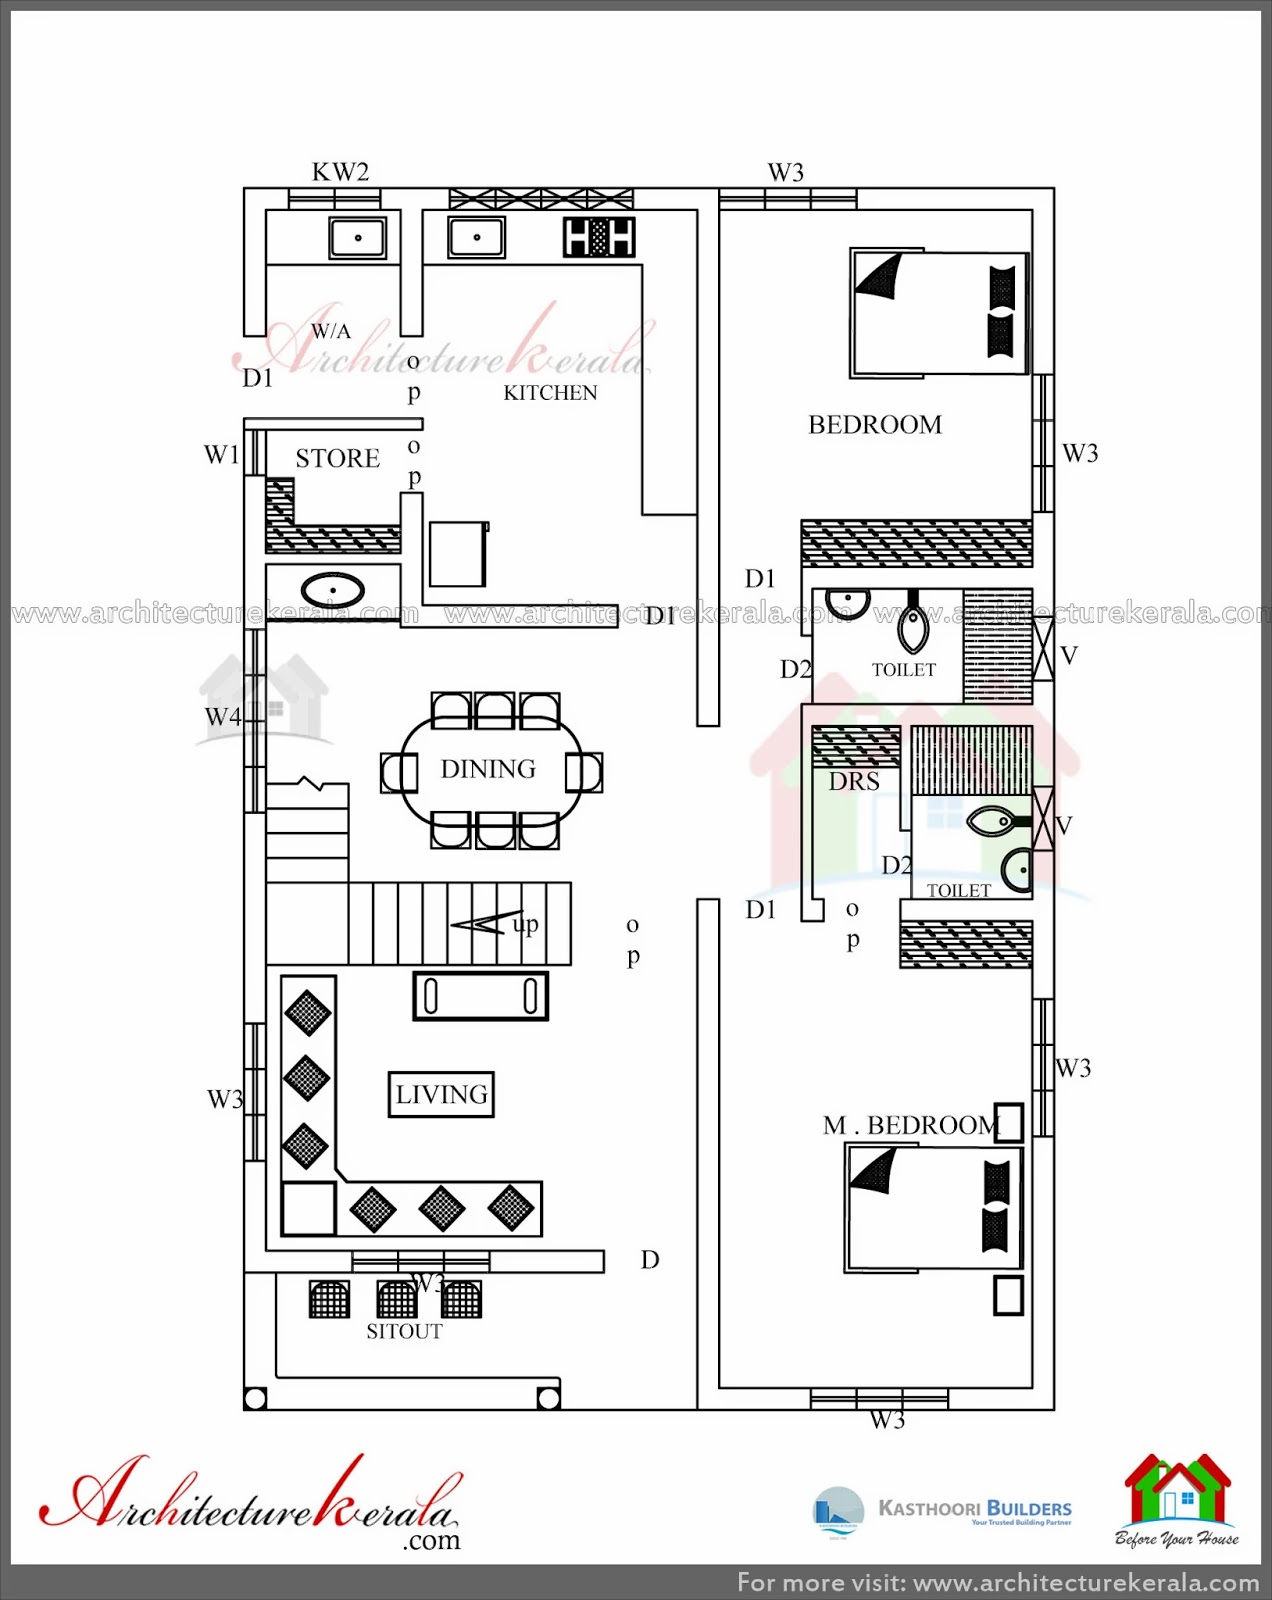 architecture+kerala+218+GF kerala home plans 1200 sq feet,Floor Plans Kerala Style Houses